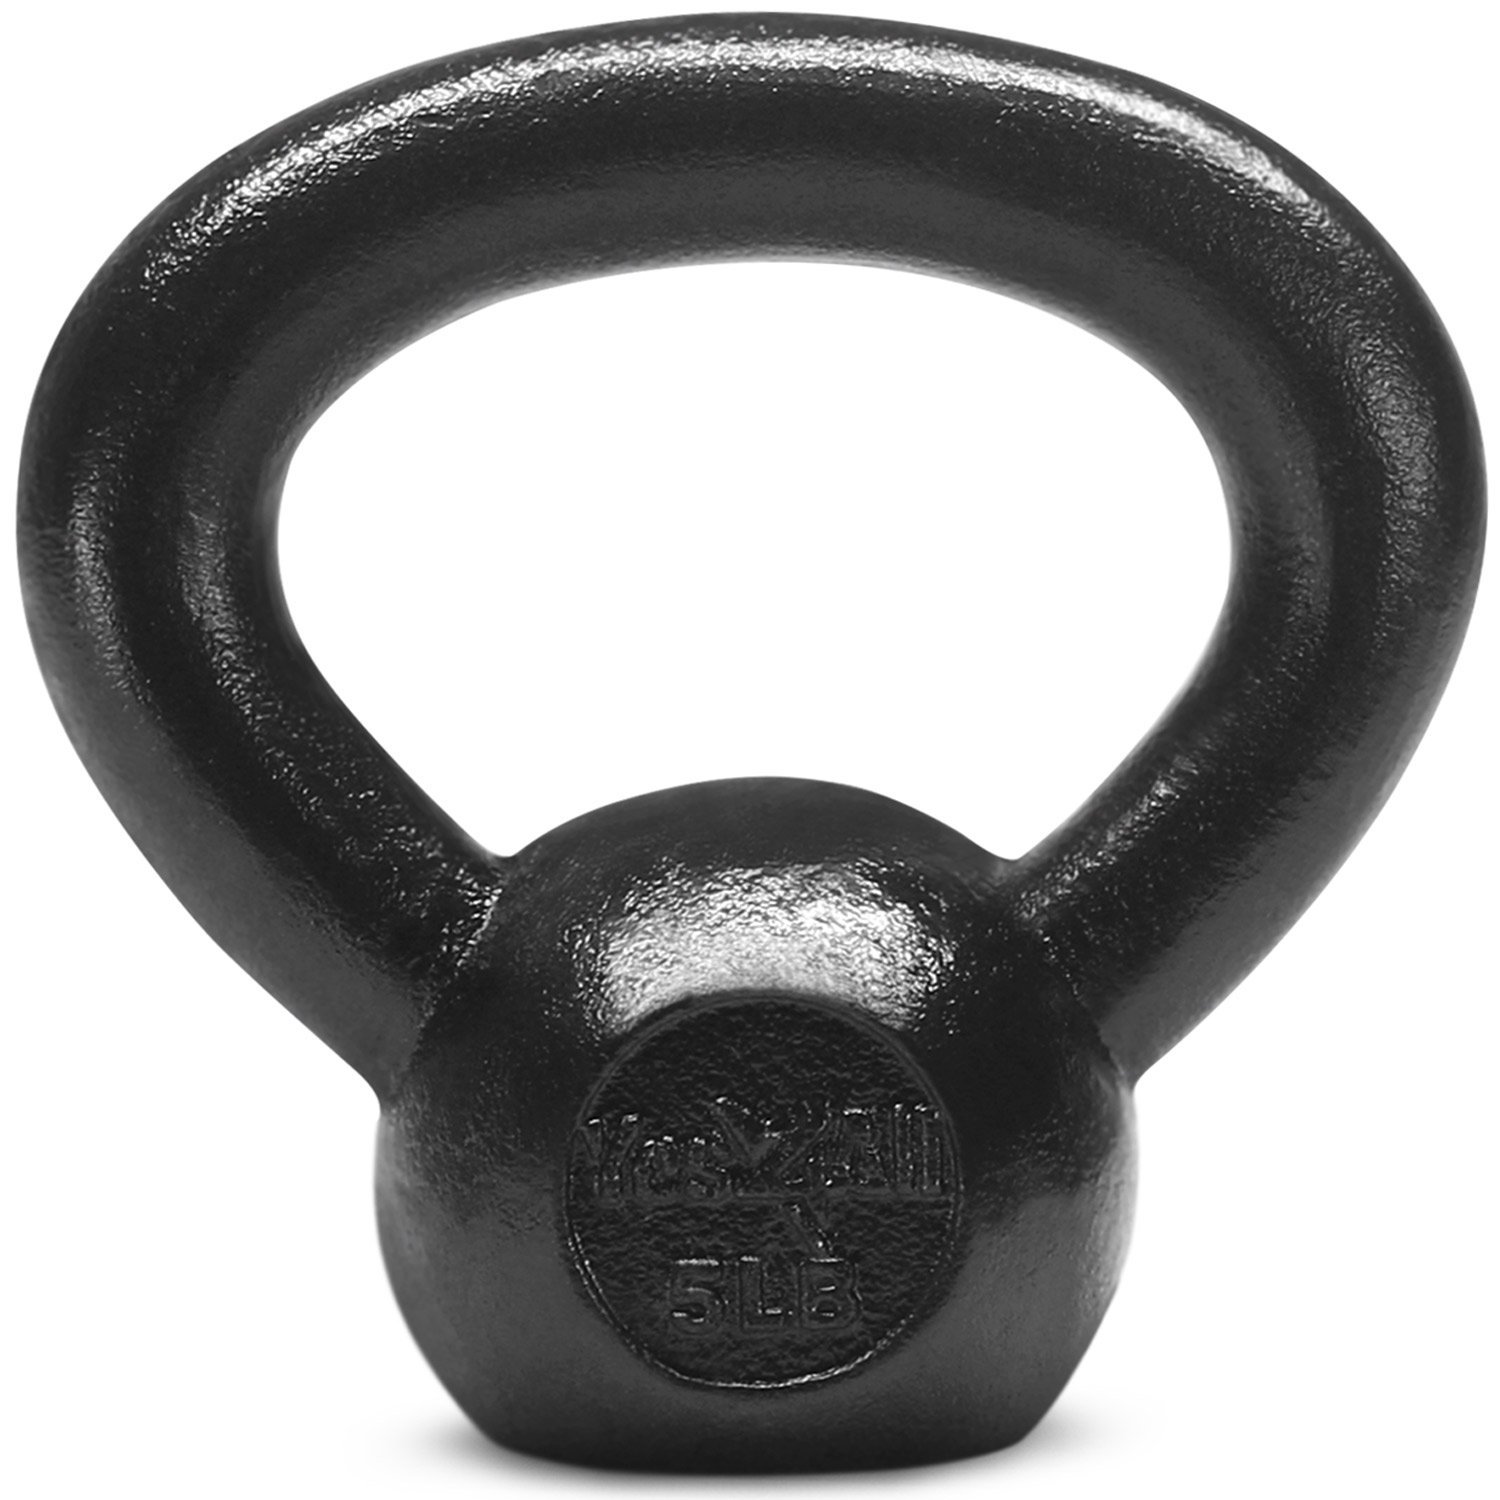 Yes4All  Combo Cast Iron Kettlebell Weight Sets – Great for Full Body Workout and Strength Training – Kettlebells 5 10 15 lbs (Black) by Yes4All (Image #2)